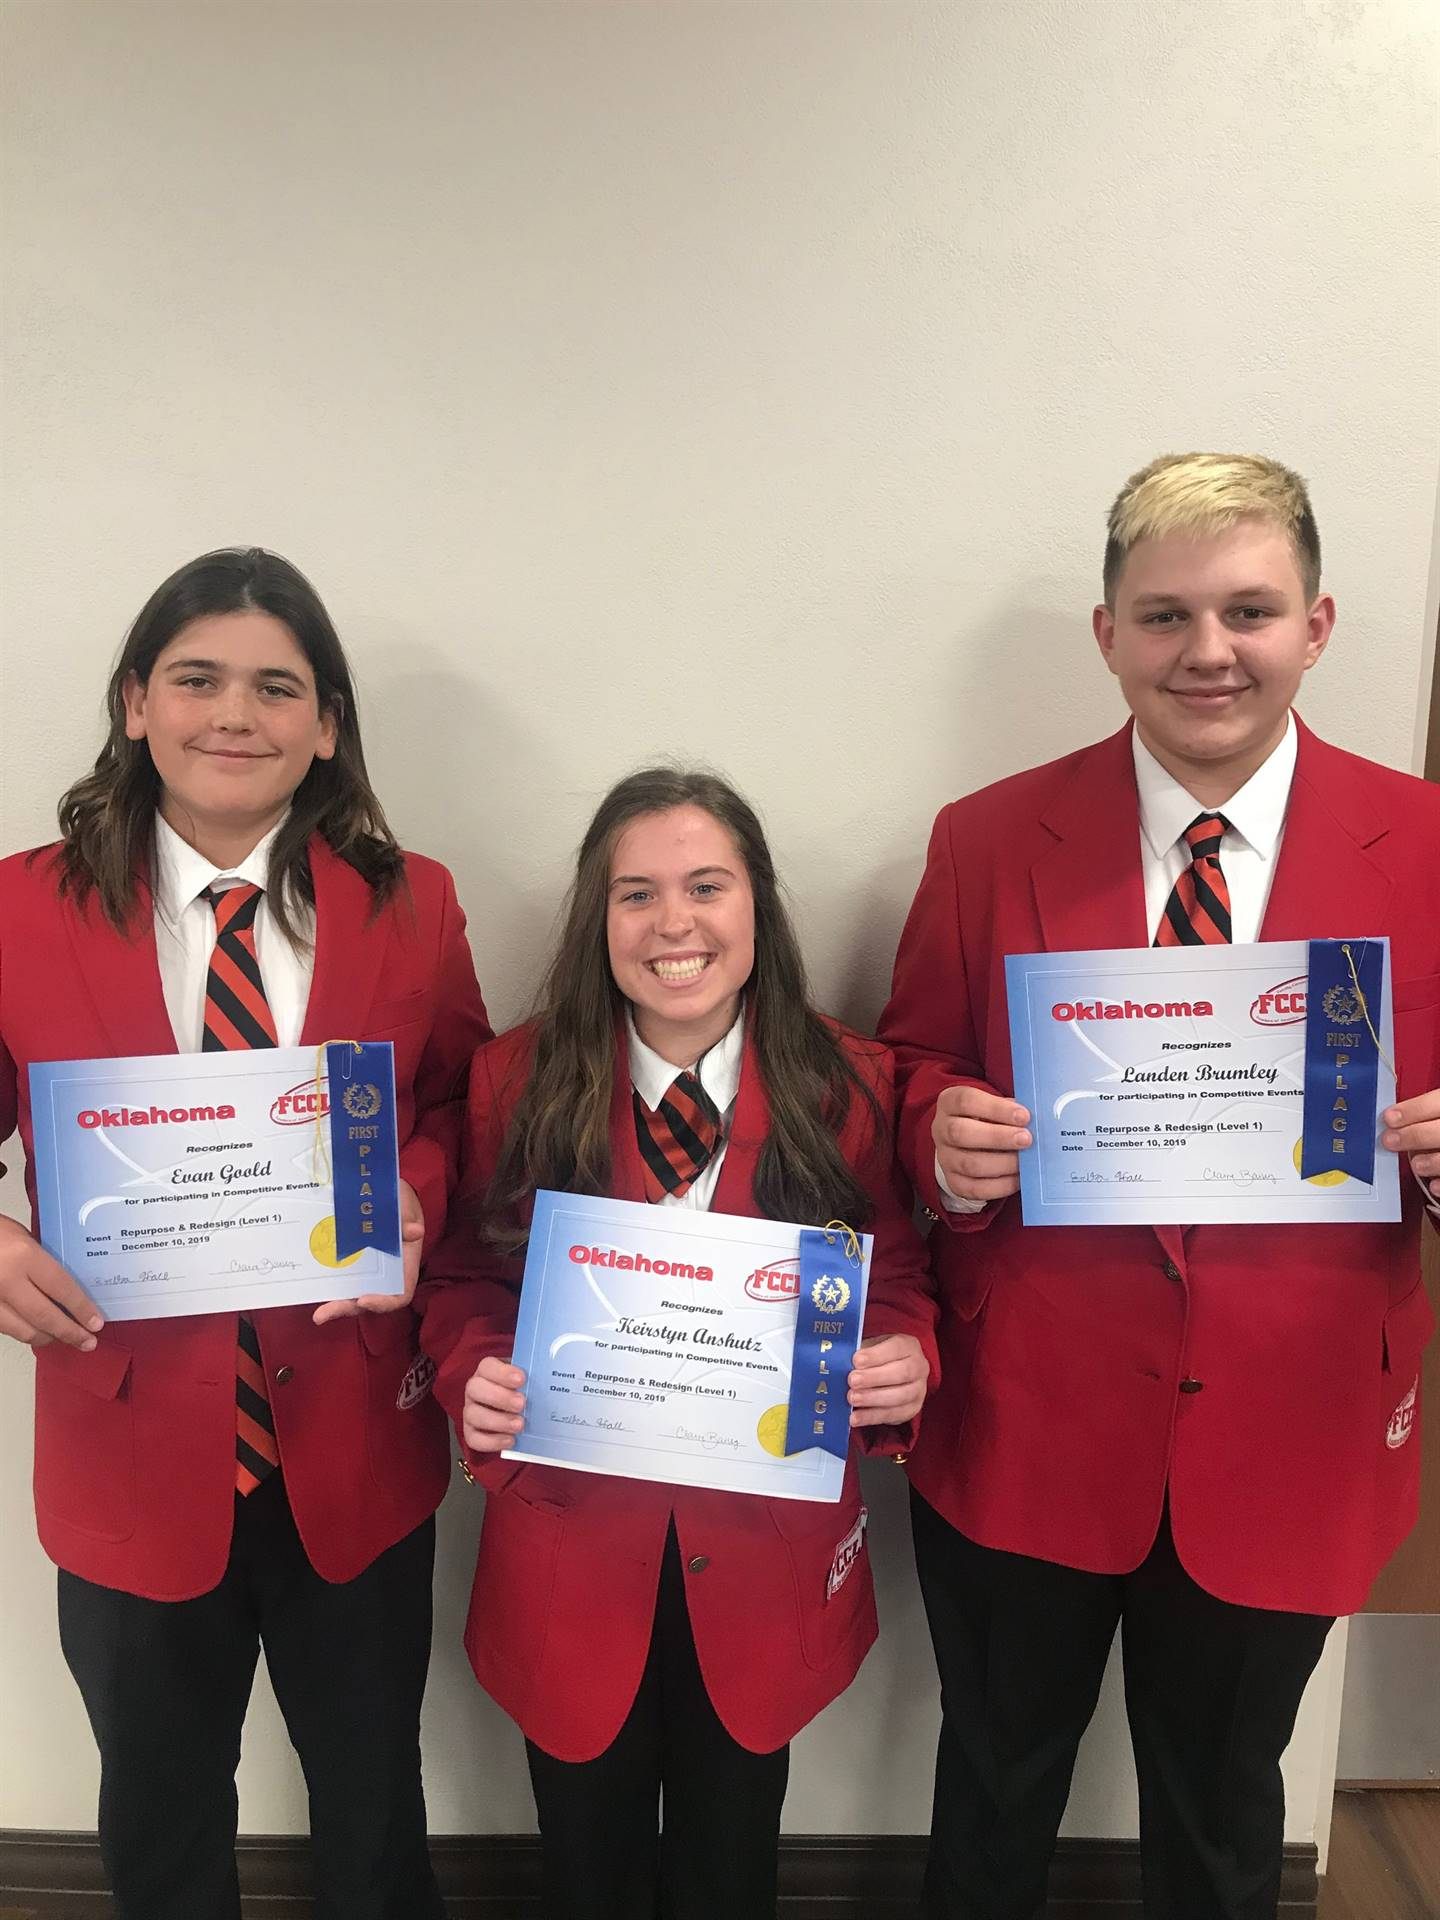 8th grade FCCLA members Keirstyn Anshutz, Landen Brumley, and Evan Goold won 1st place in the Repurp